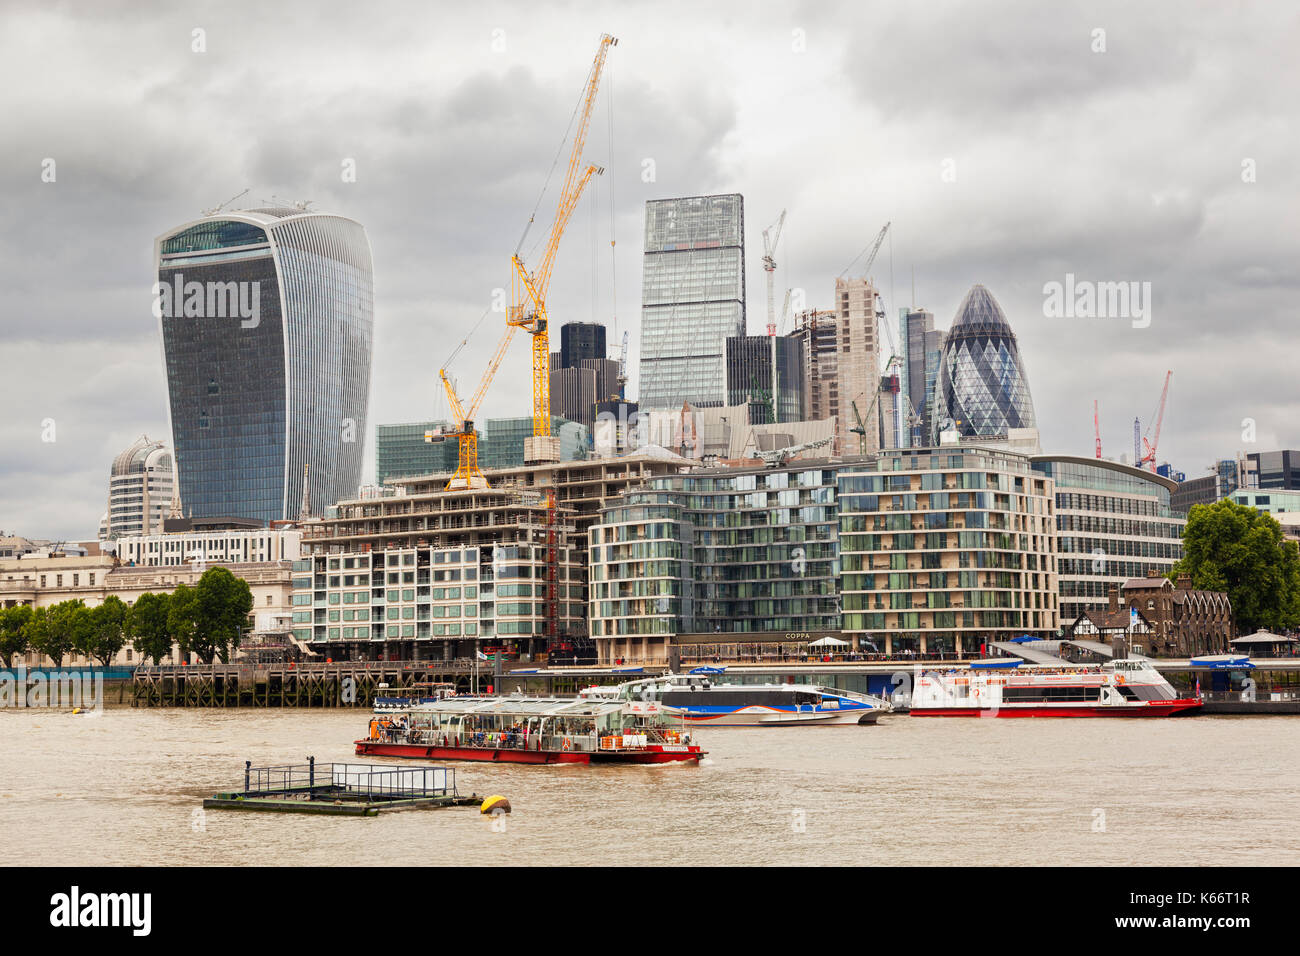 Dismantling works in the city, London, UK, on a stormy sky; as a concep of the Brexit - Stock Image